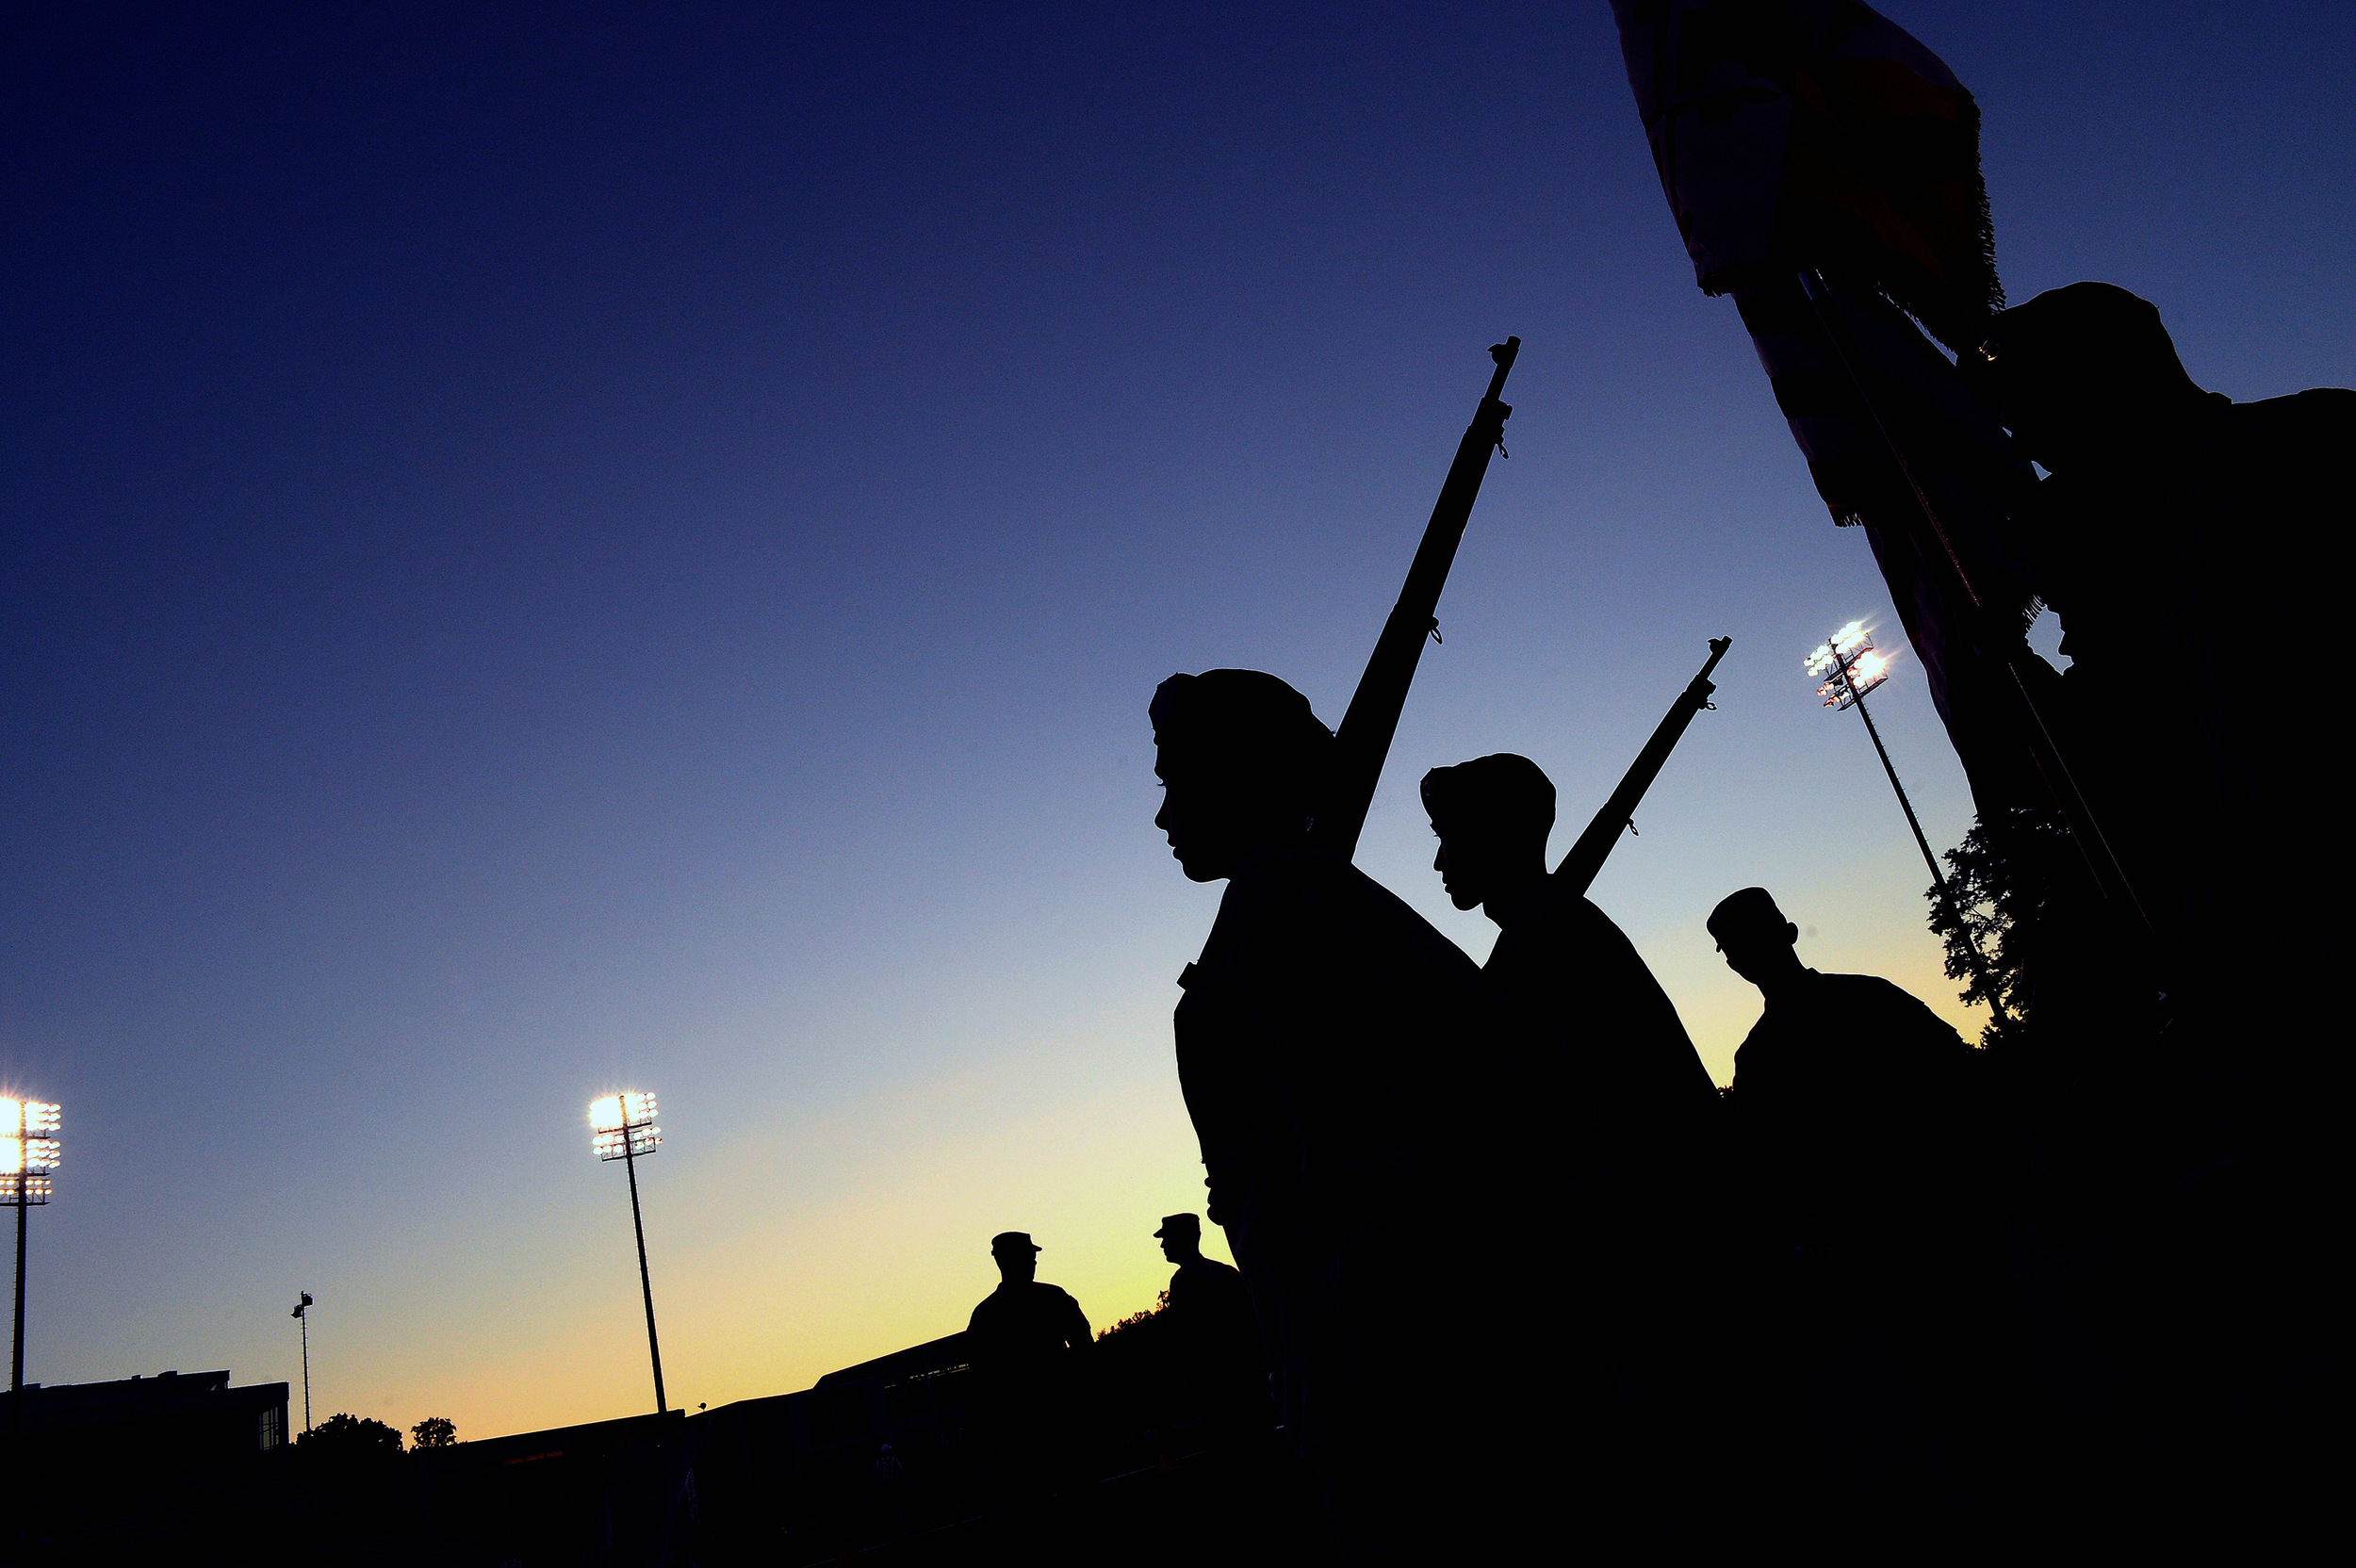 Towson and Loyola University ROTC practice their routine on Sept. 14, 2013 in Baltimore, Md.